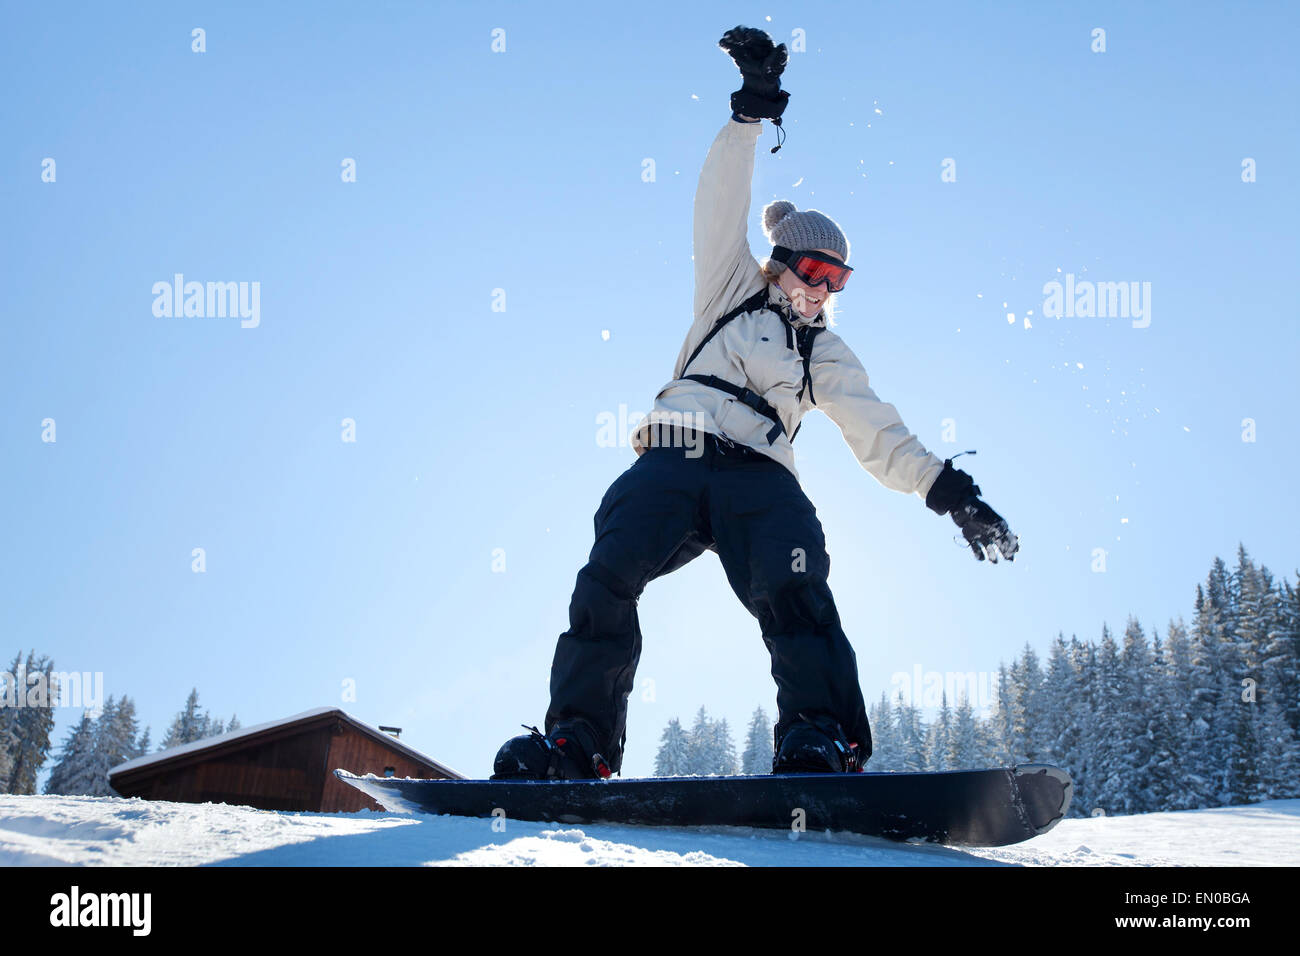 learning snowboard, amateur in ski school - Stock Image